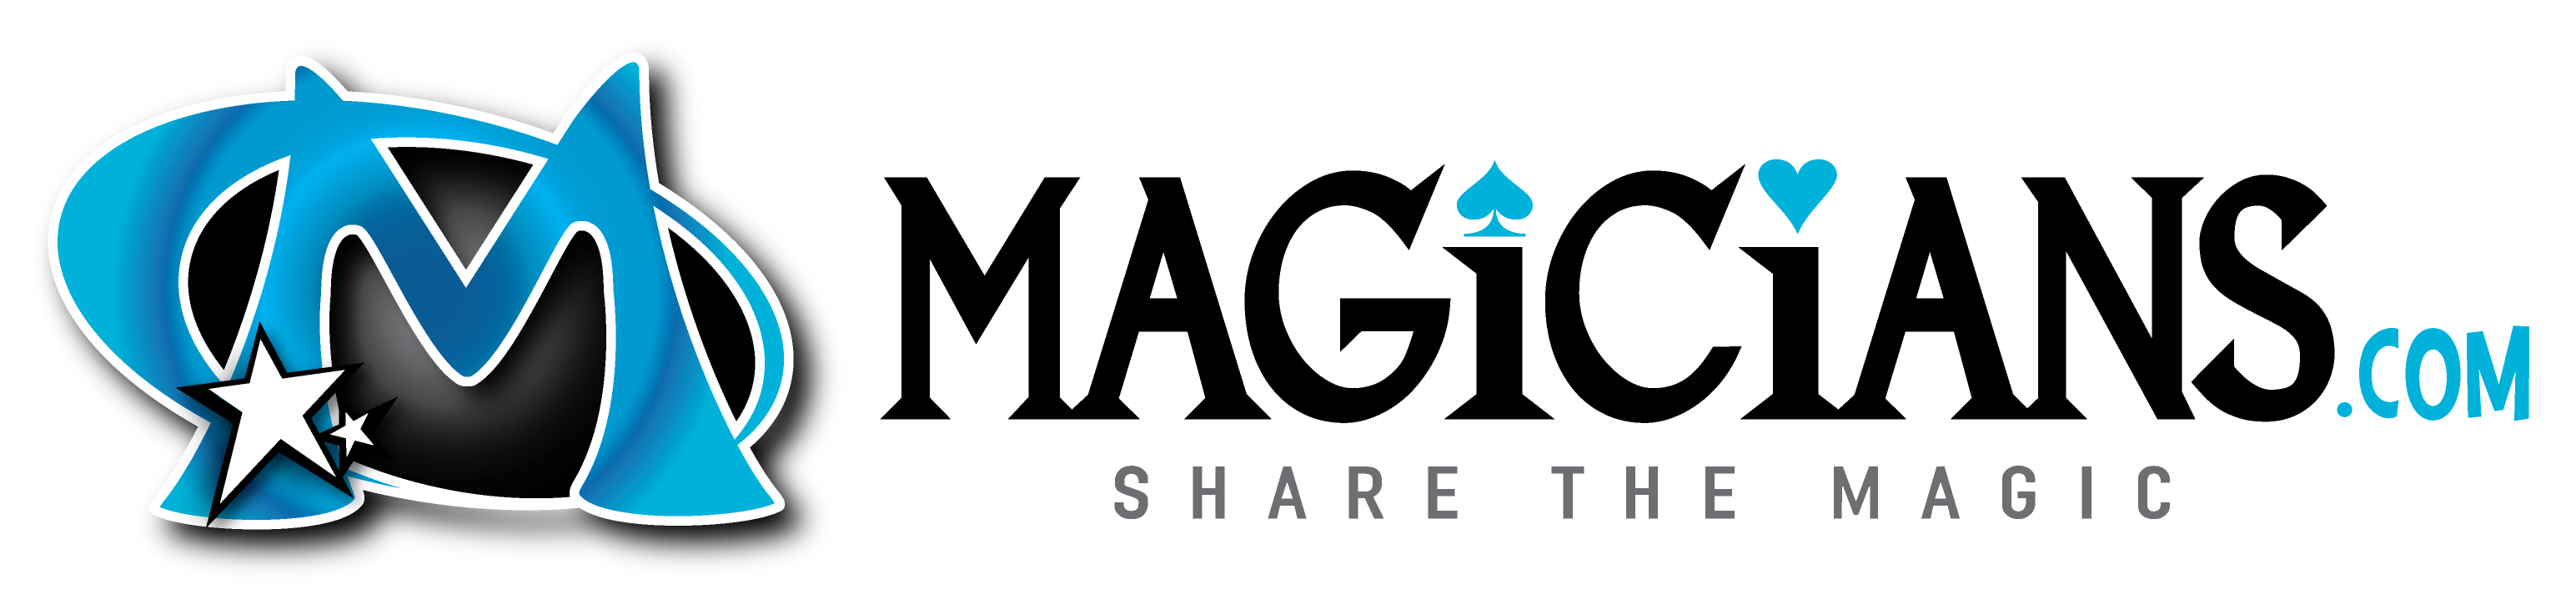 Magicians - Share the Magic